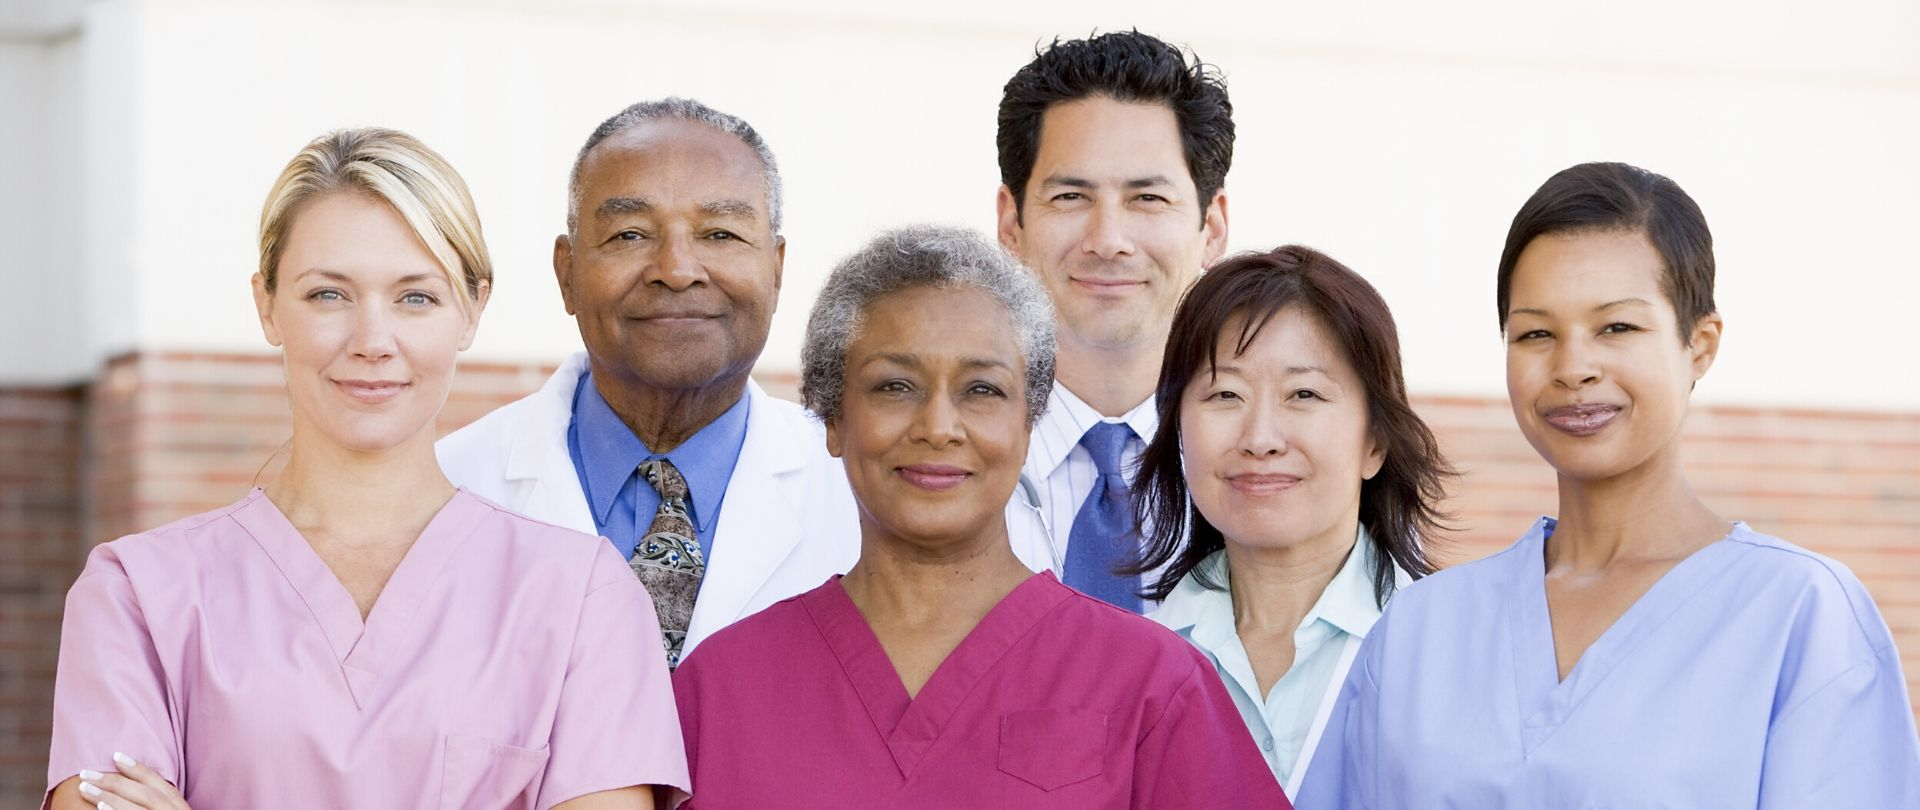 Healthcare Workers 2 1920x810 1 - Frontline Healthcare Worker Online Program